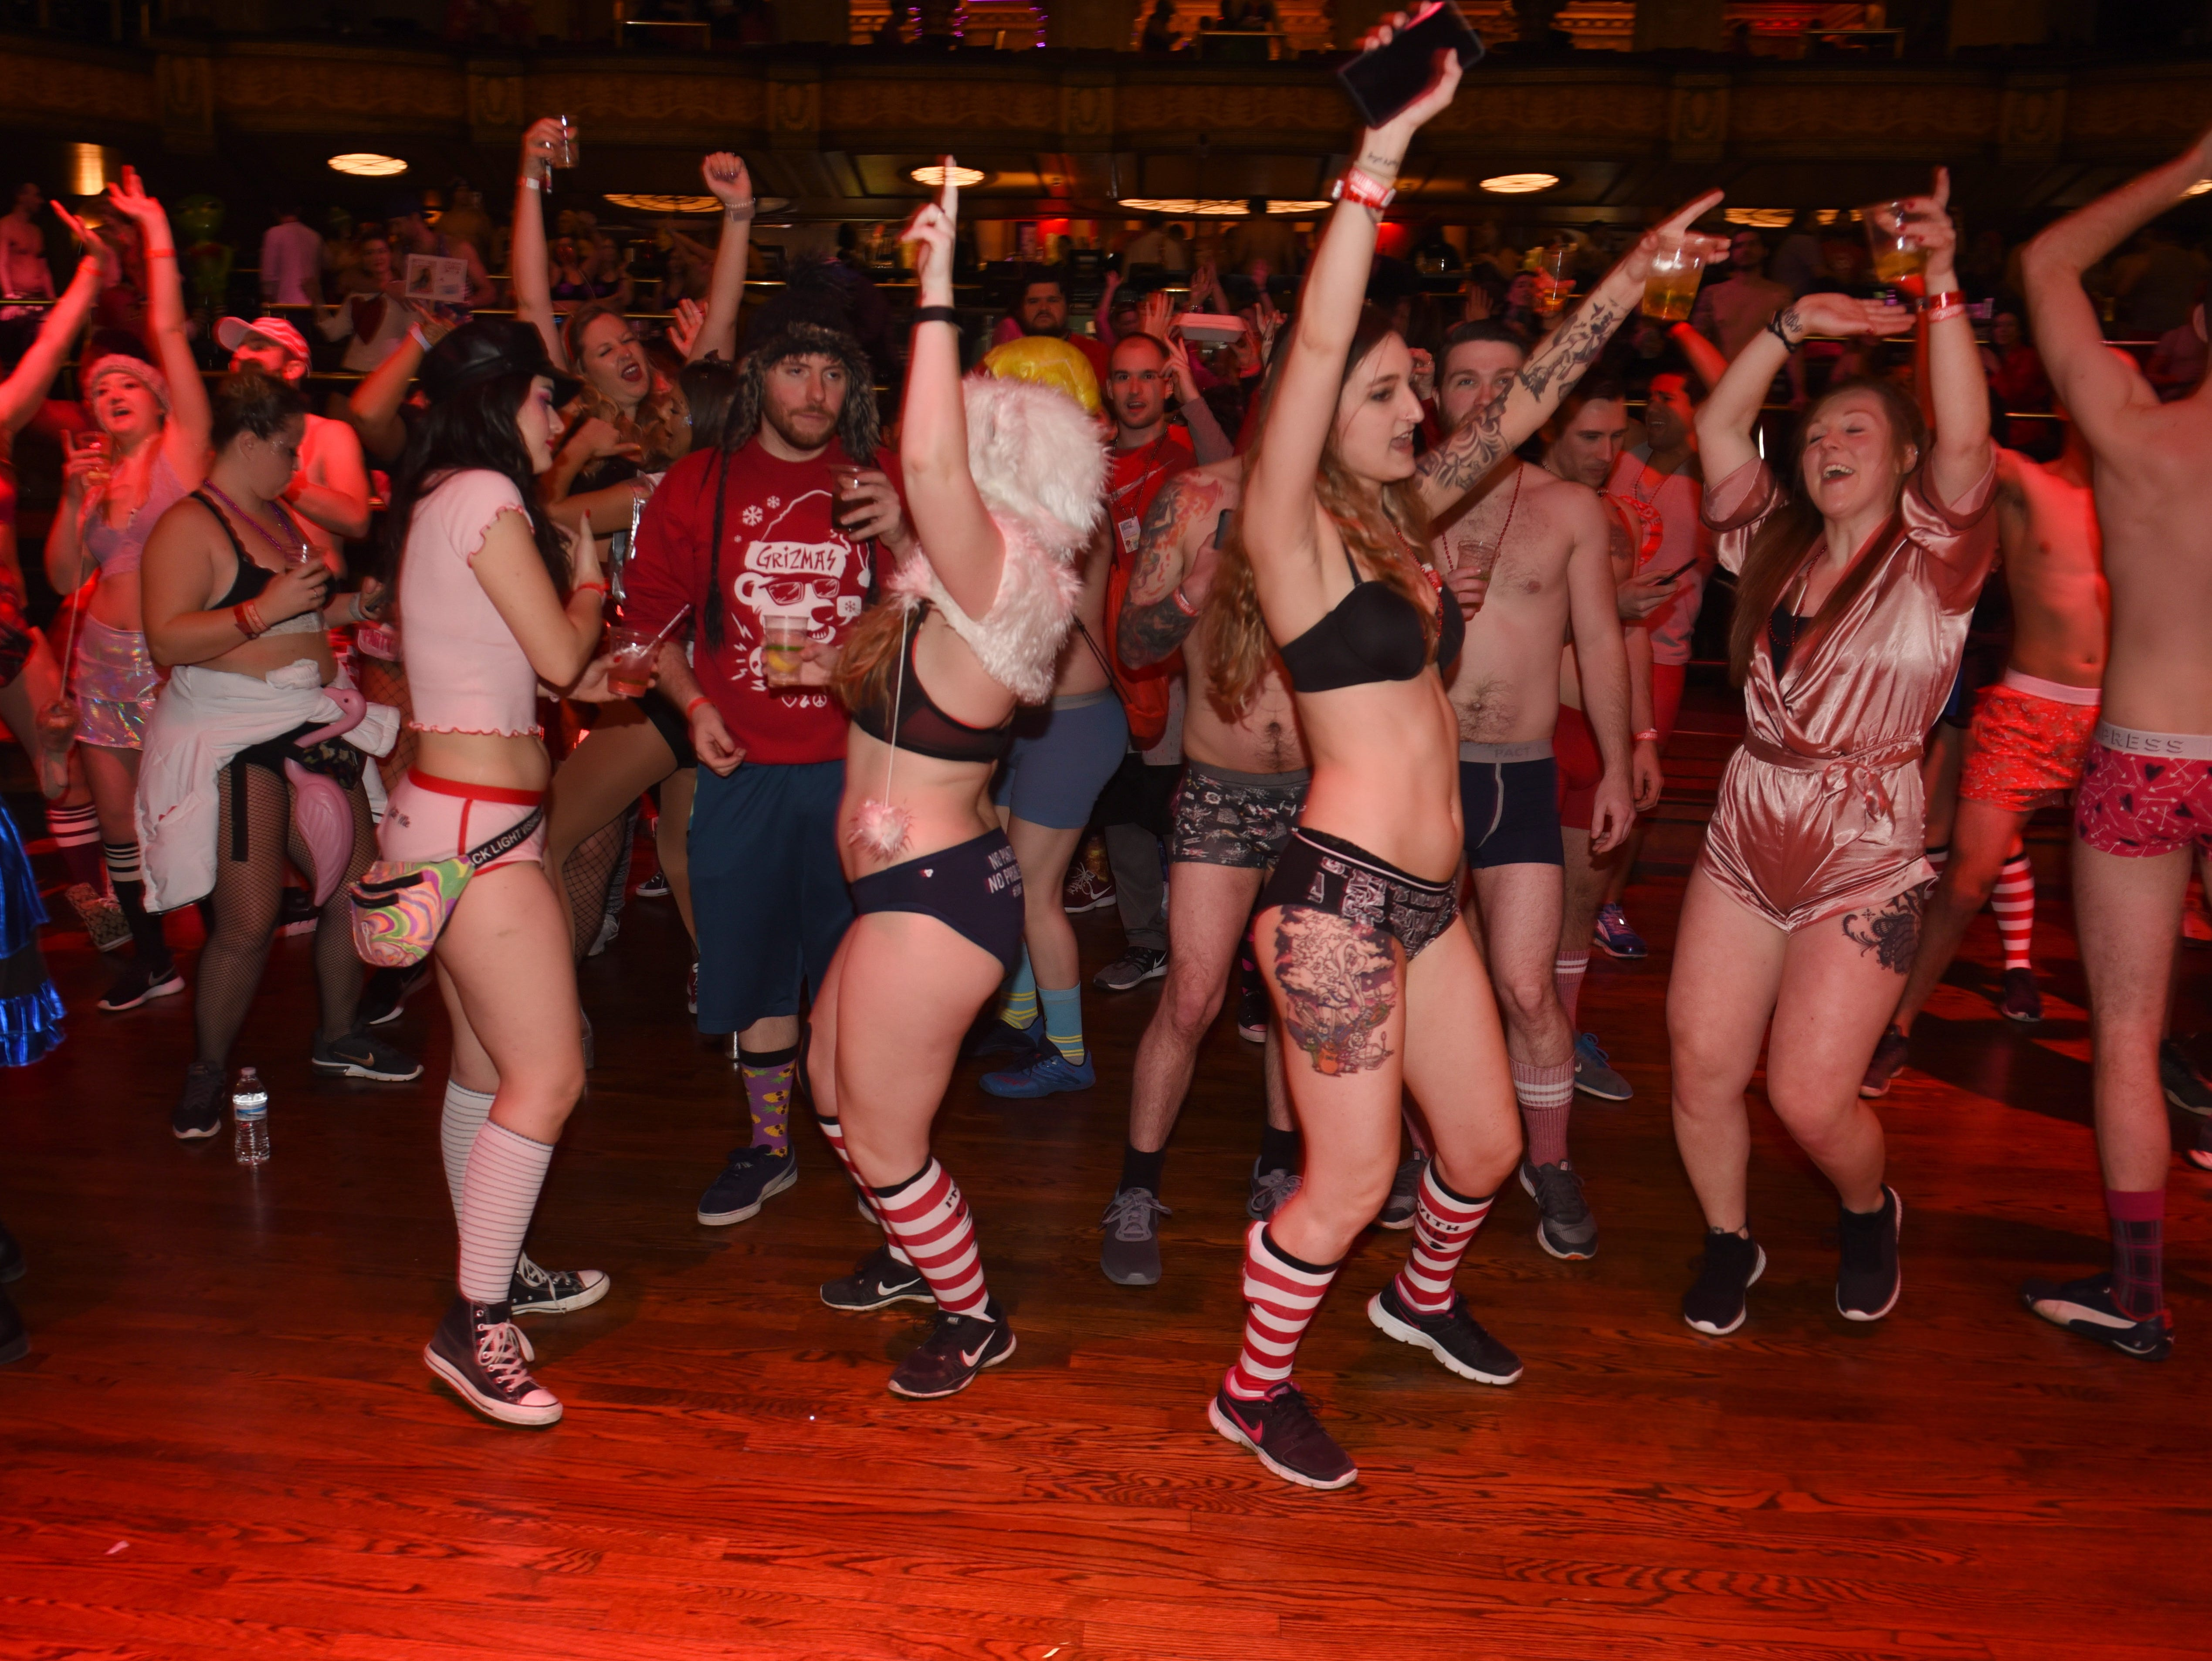 Participants dance and party at The Fillmore Detroit for Cupid's Undie Run on Saturday, February 9, 2019.